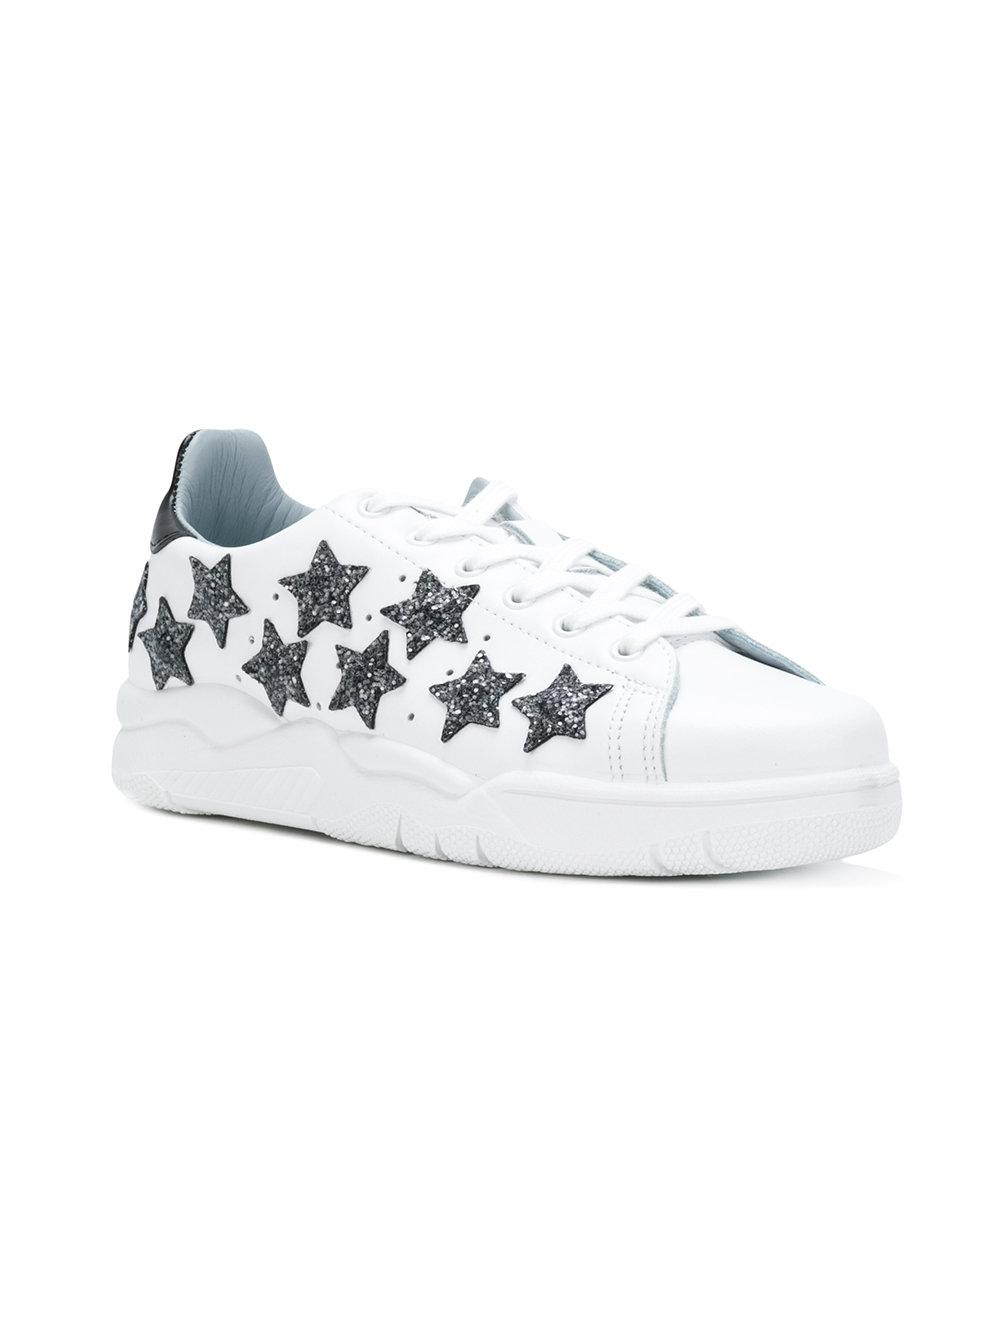 Outlet Cheap Authentic Shipping Discount Authentic embellished Roger sneakers - White Chiara Ferragni Buy Cheap Latest Collections Cheap Sale Finishline Outlet For Nice 8rYDGtp0